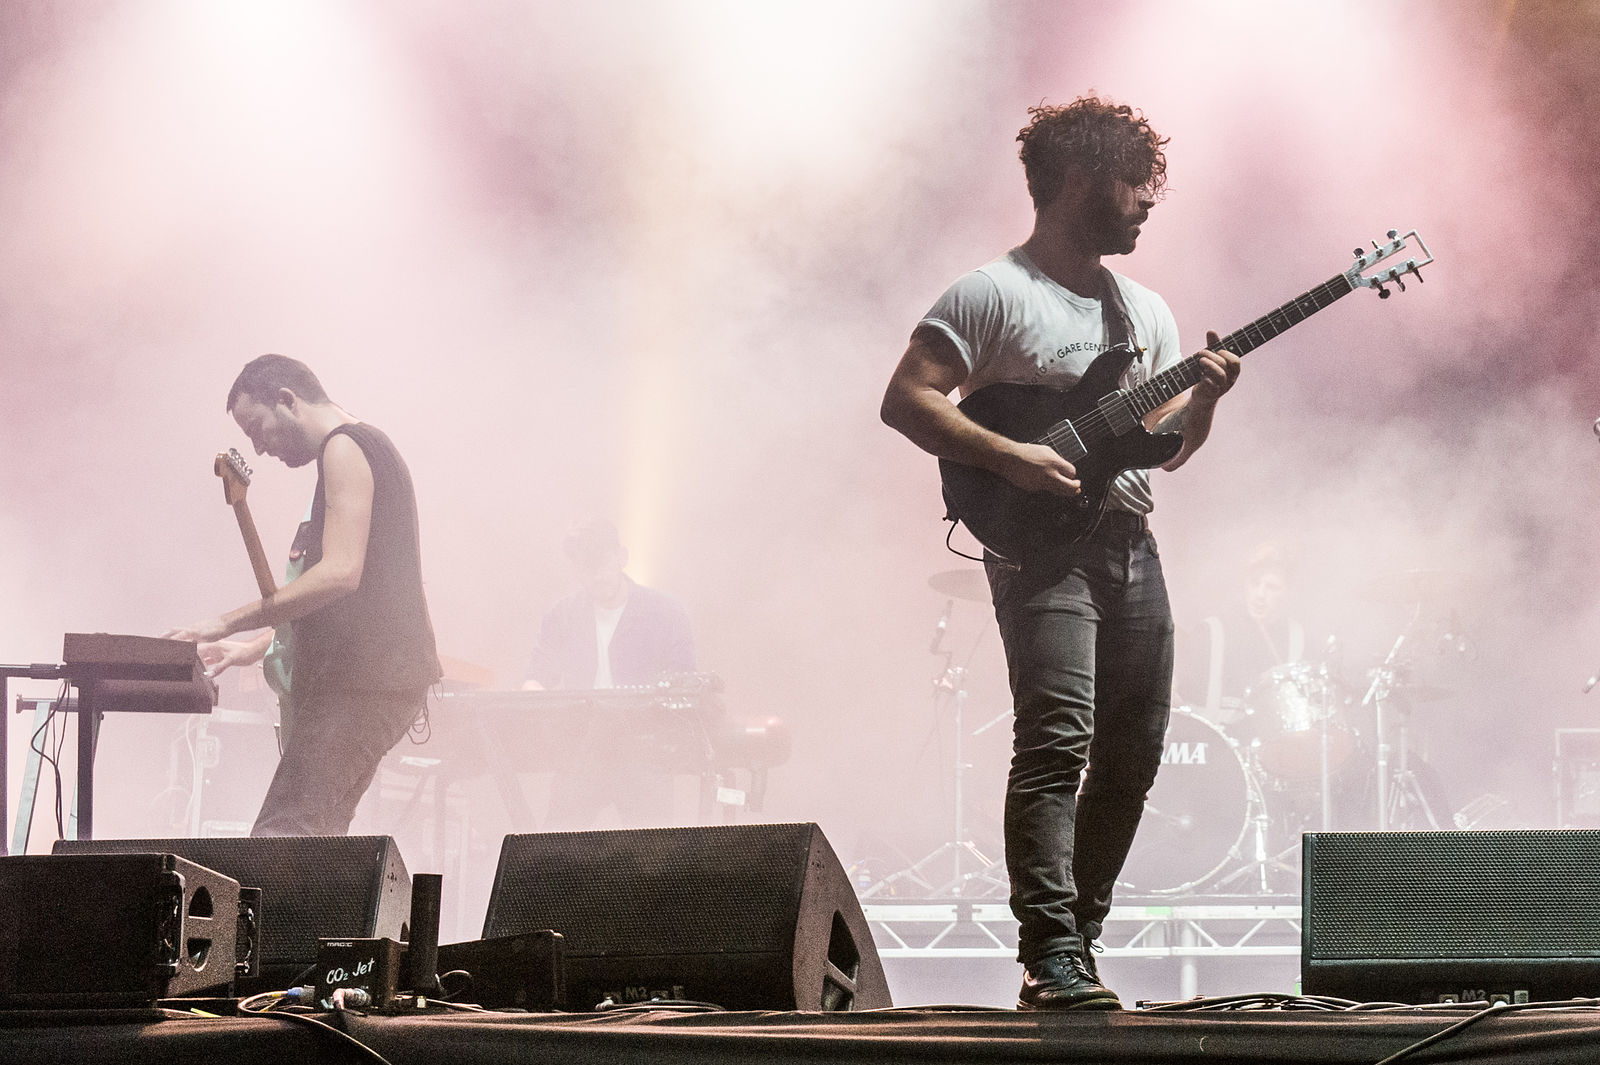 The Foals